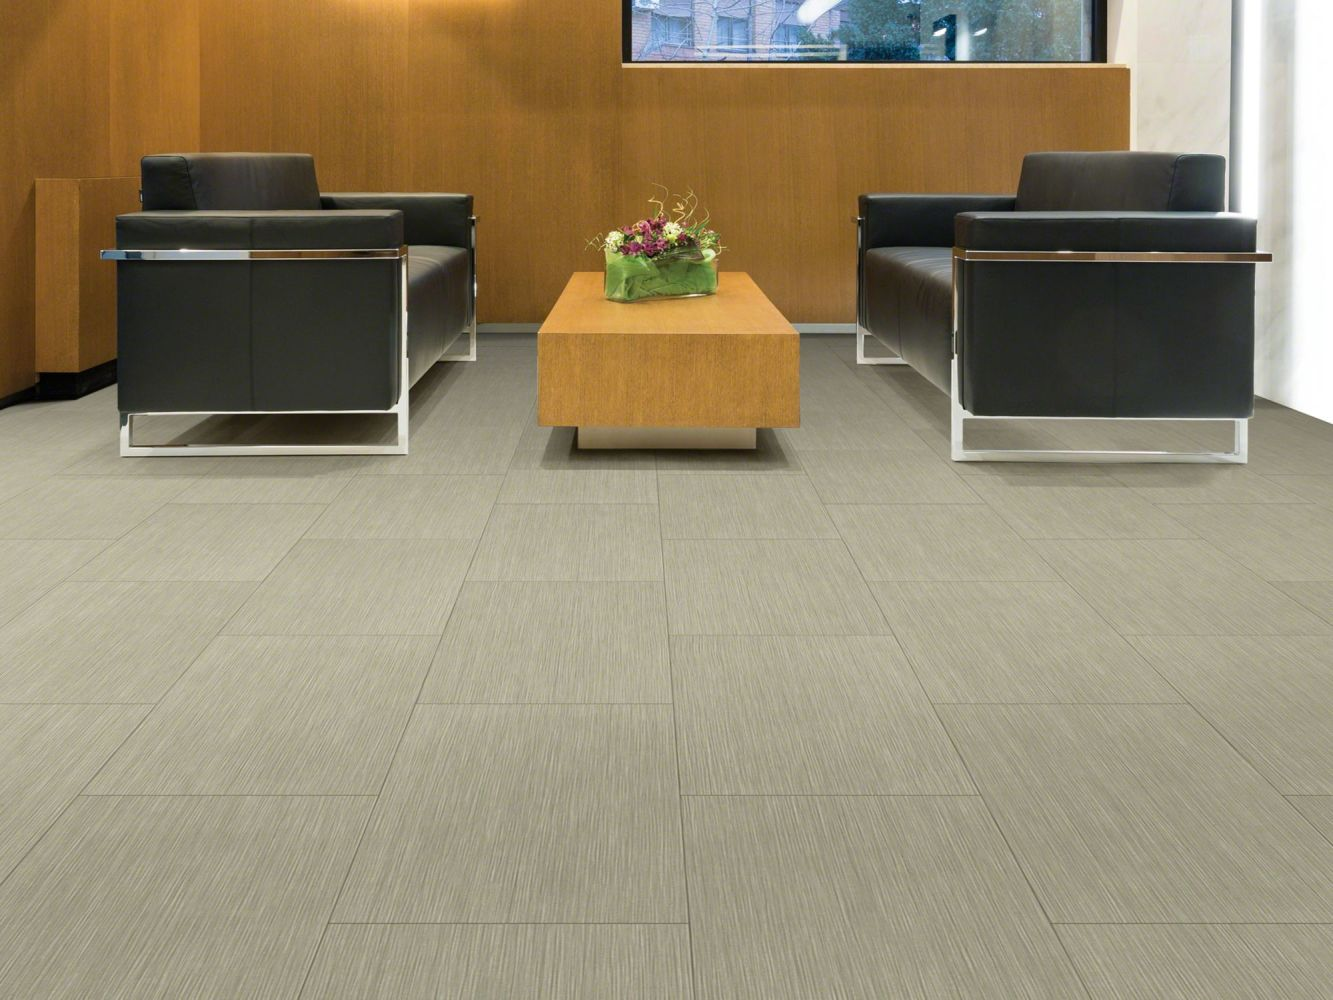 Shaw Floors Resilient Residential Intrepid Tile Plus Sediment 00789_2026V